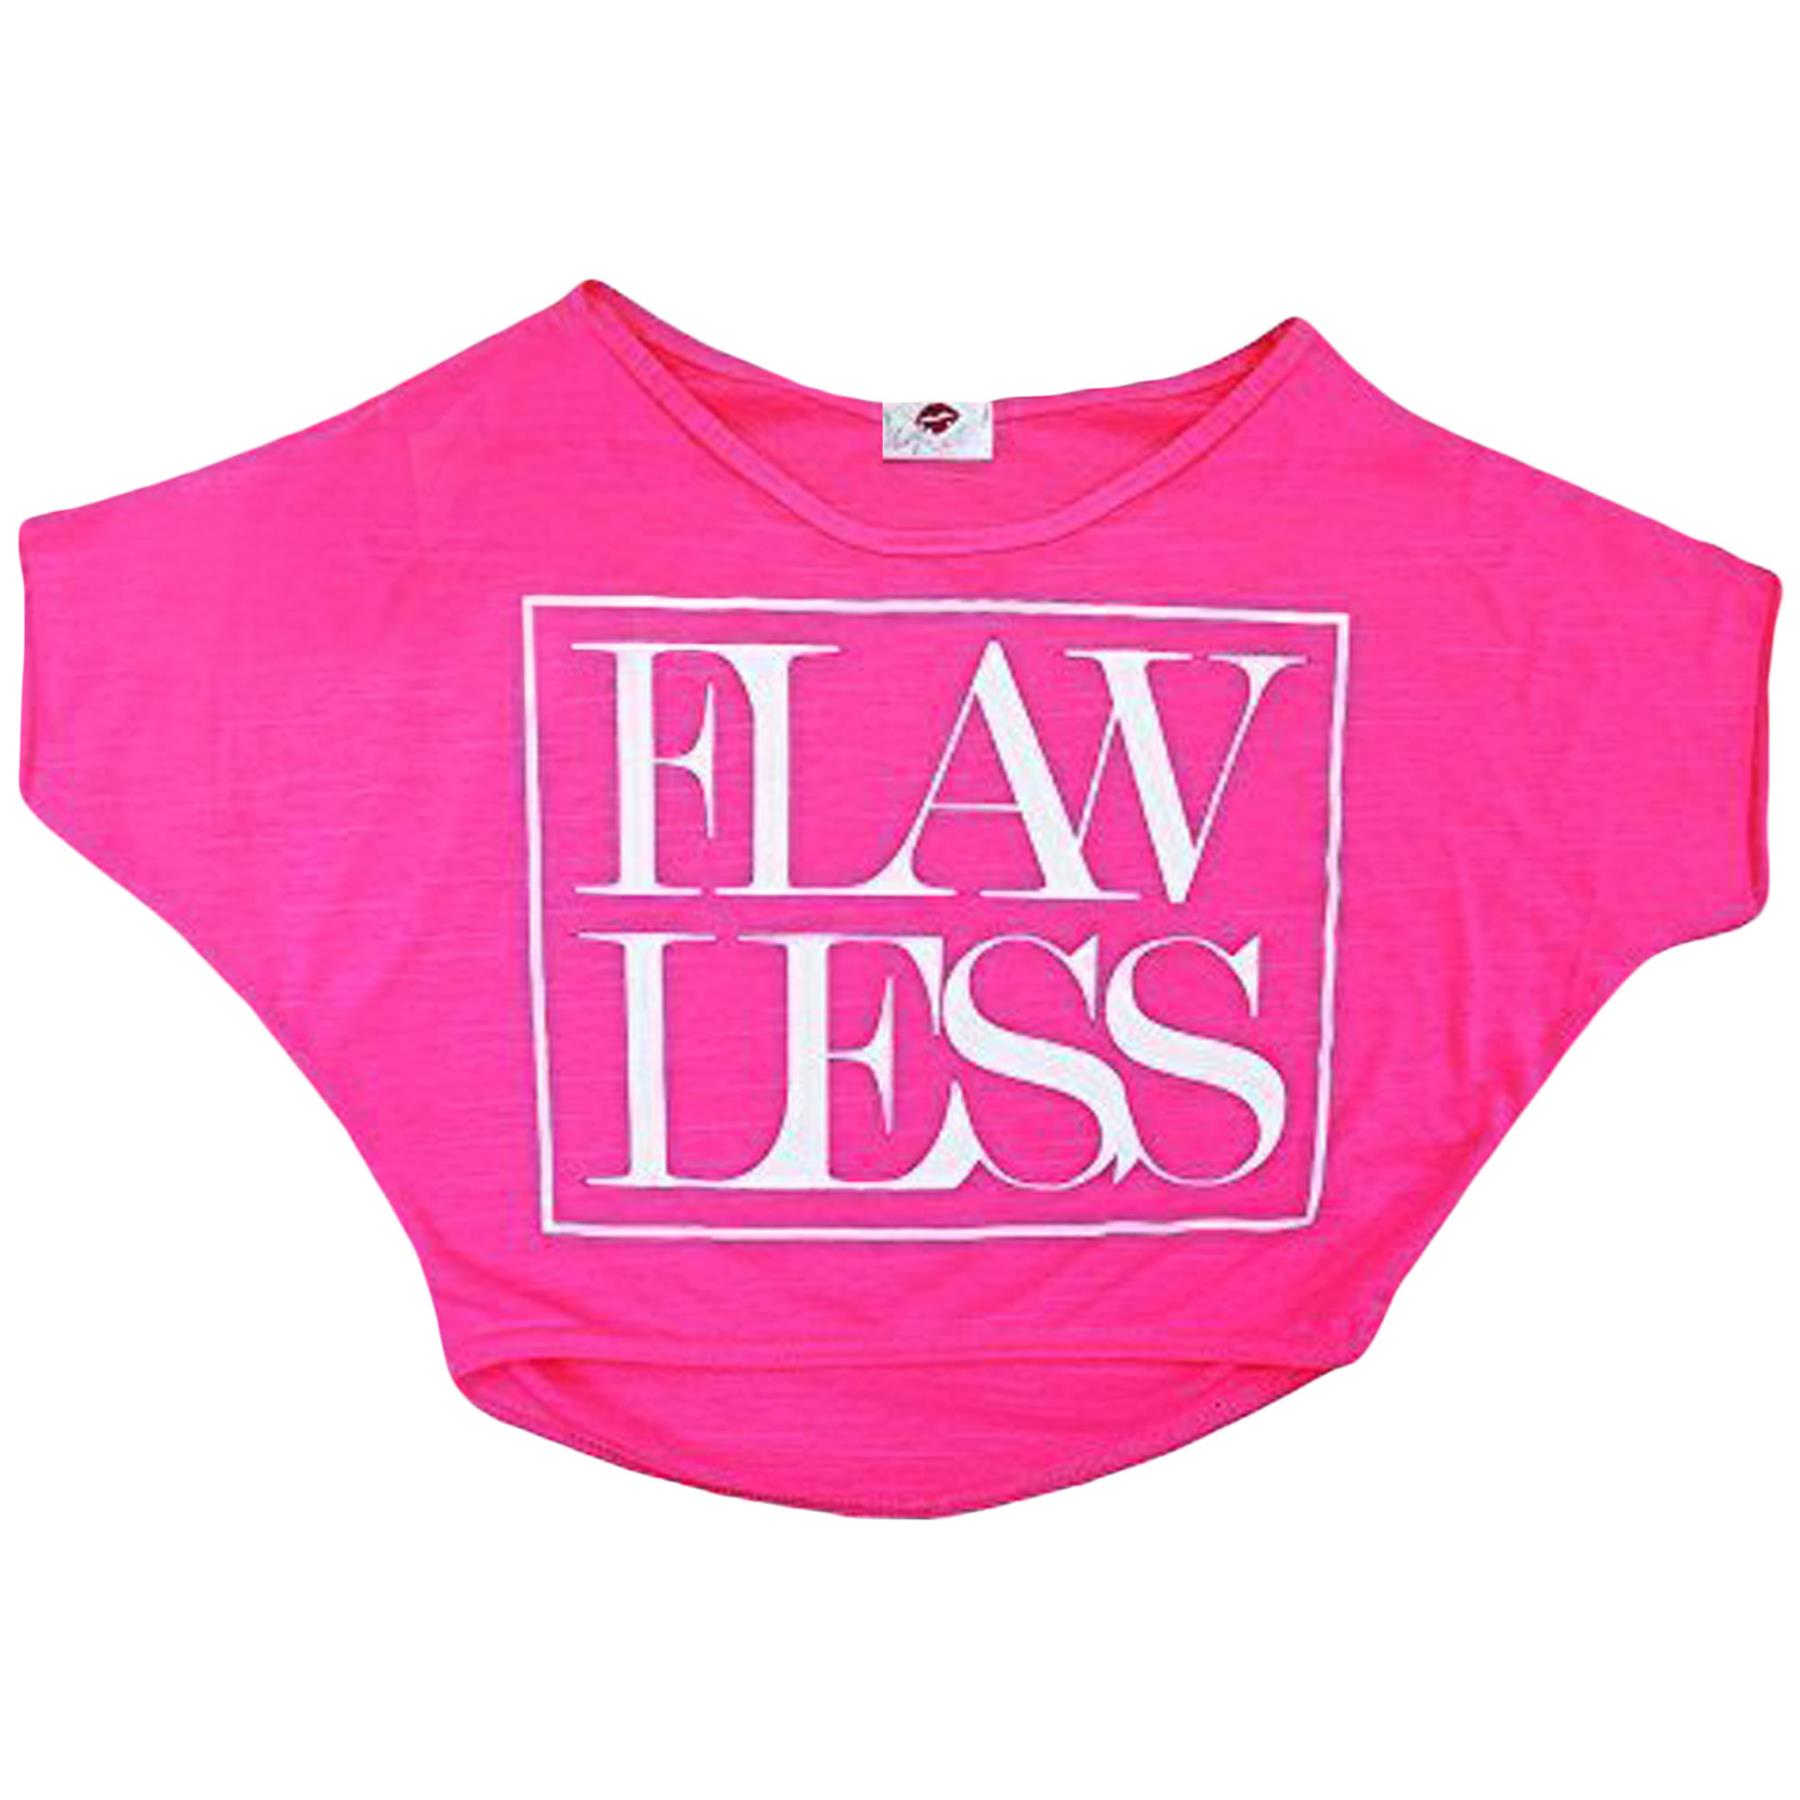 Kids-Girls-New-Season-034-FLAWLESS-034-Print-Crop-Top-Stylish-Fashion-T-Shirt-Age-7-13 miniatuur 13